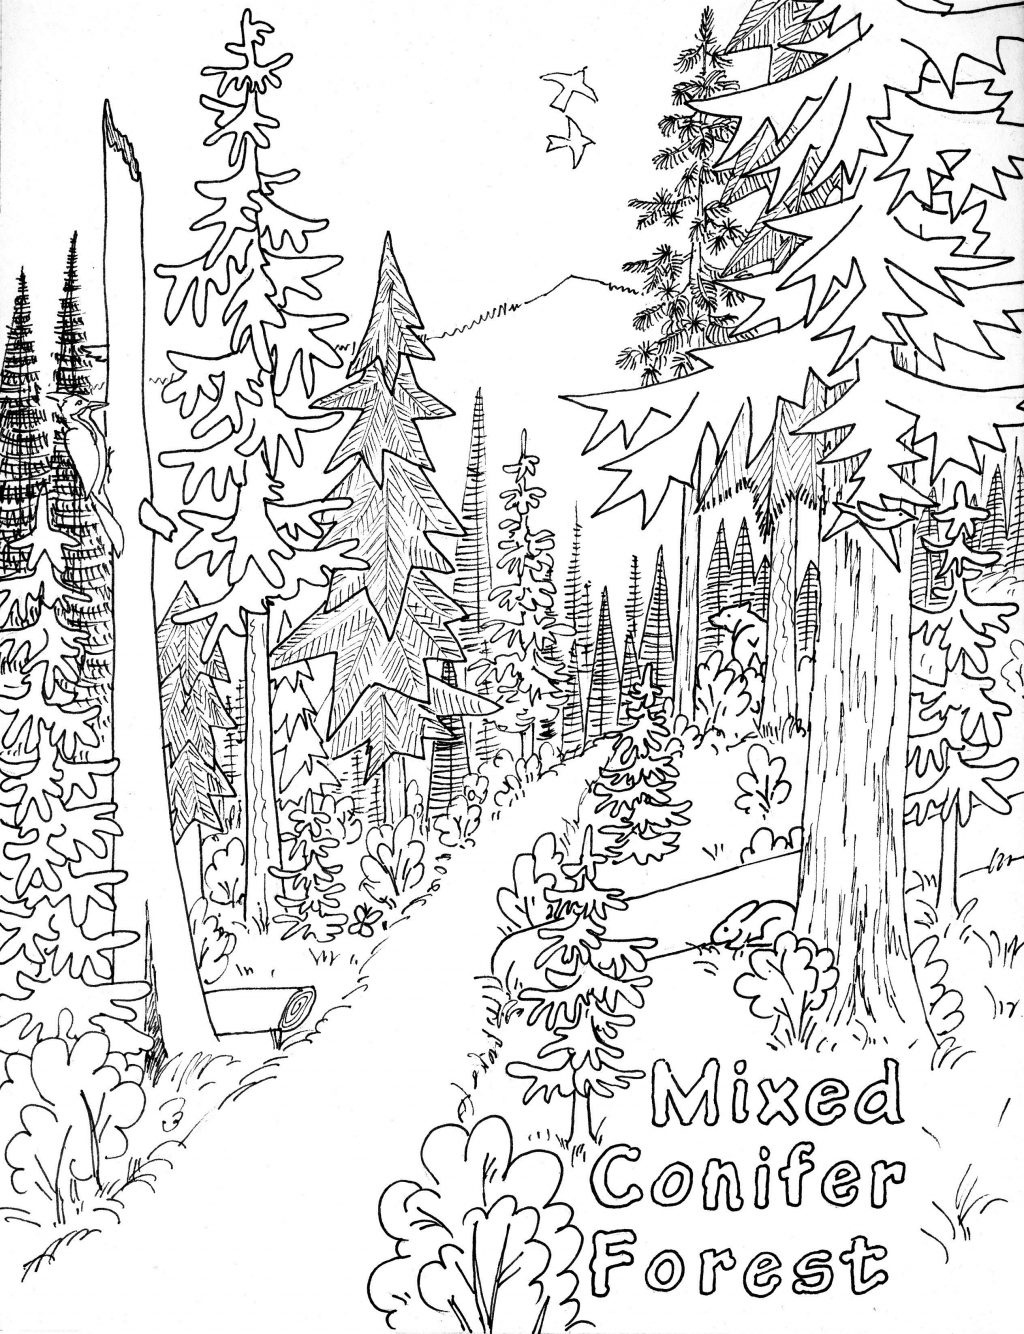 Coloring Page ~ Marvelous Nature Coloring Pages For Adults Page Free - Free Printable Nature Coloring Pages For Adults